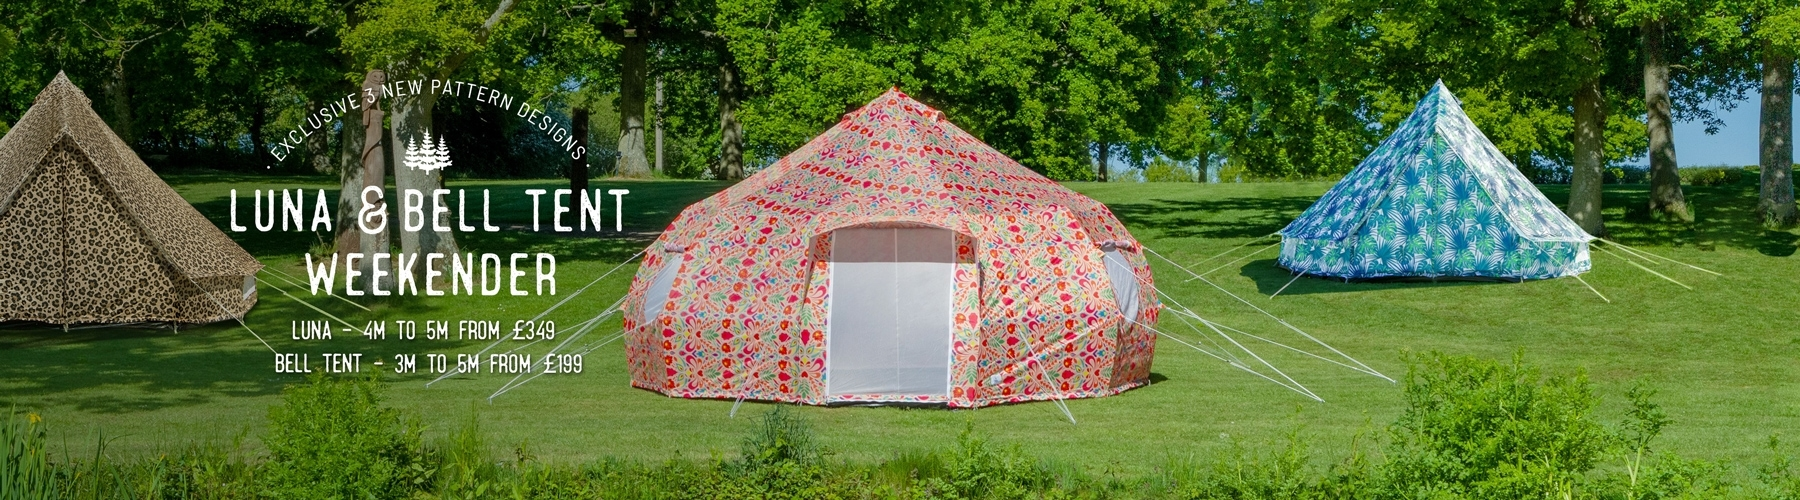 Luna and Bell Tent Weekender